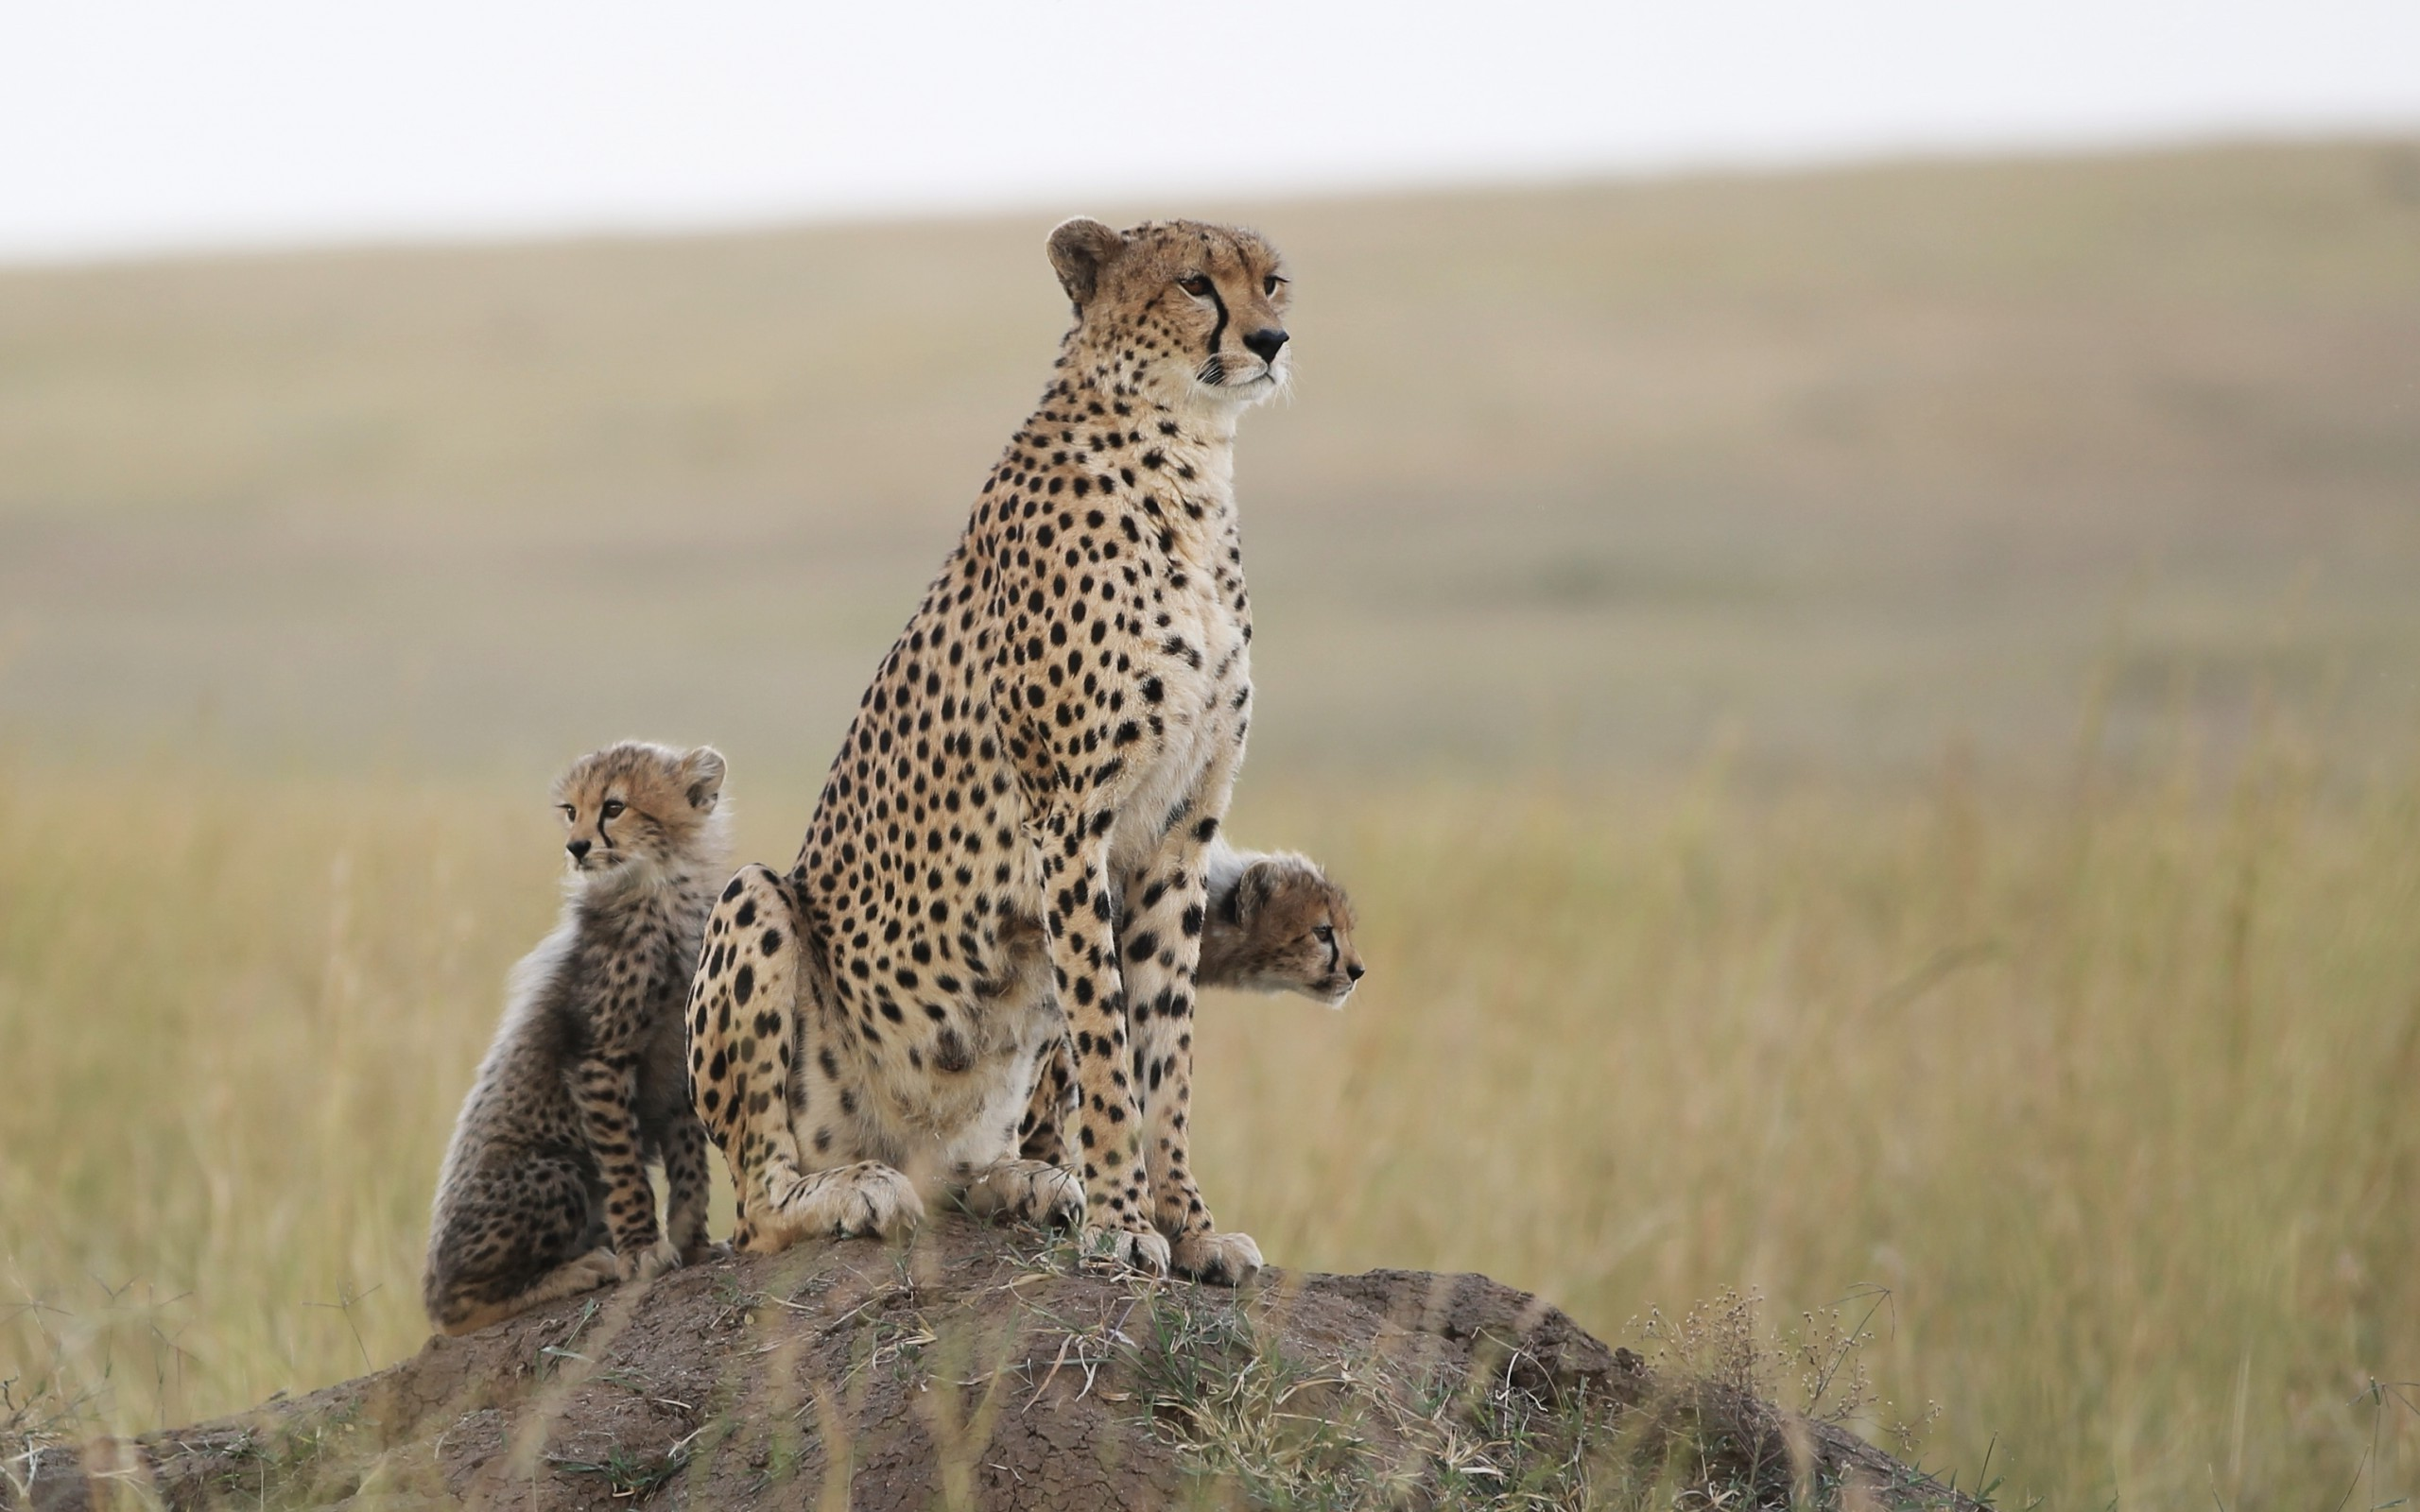 Biggest Collection Of Hd Baby Wallpaper For Desktop And Mobile: Baby Cheetah Wallpaper (66+ Images